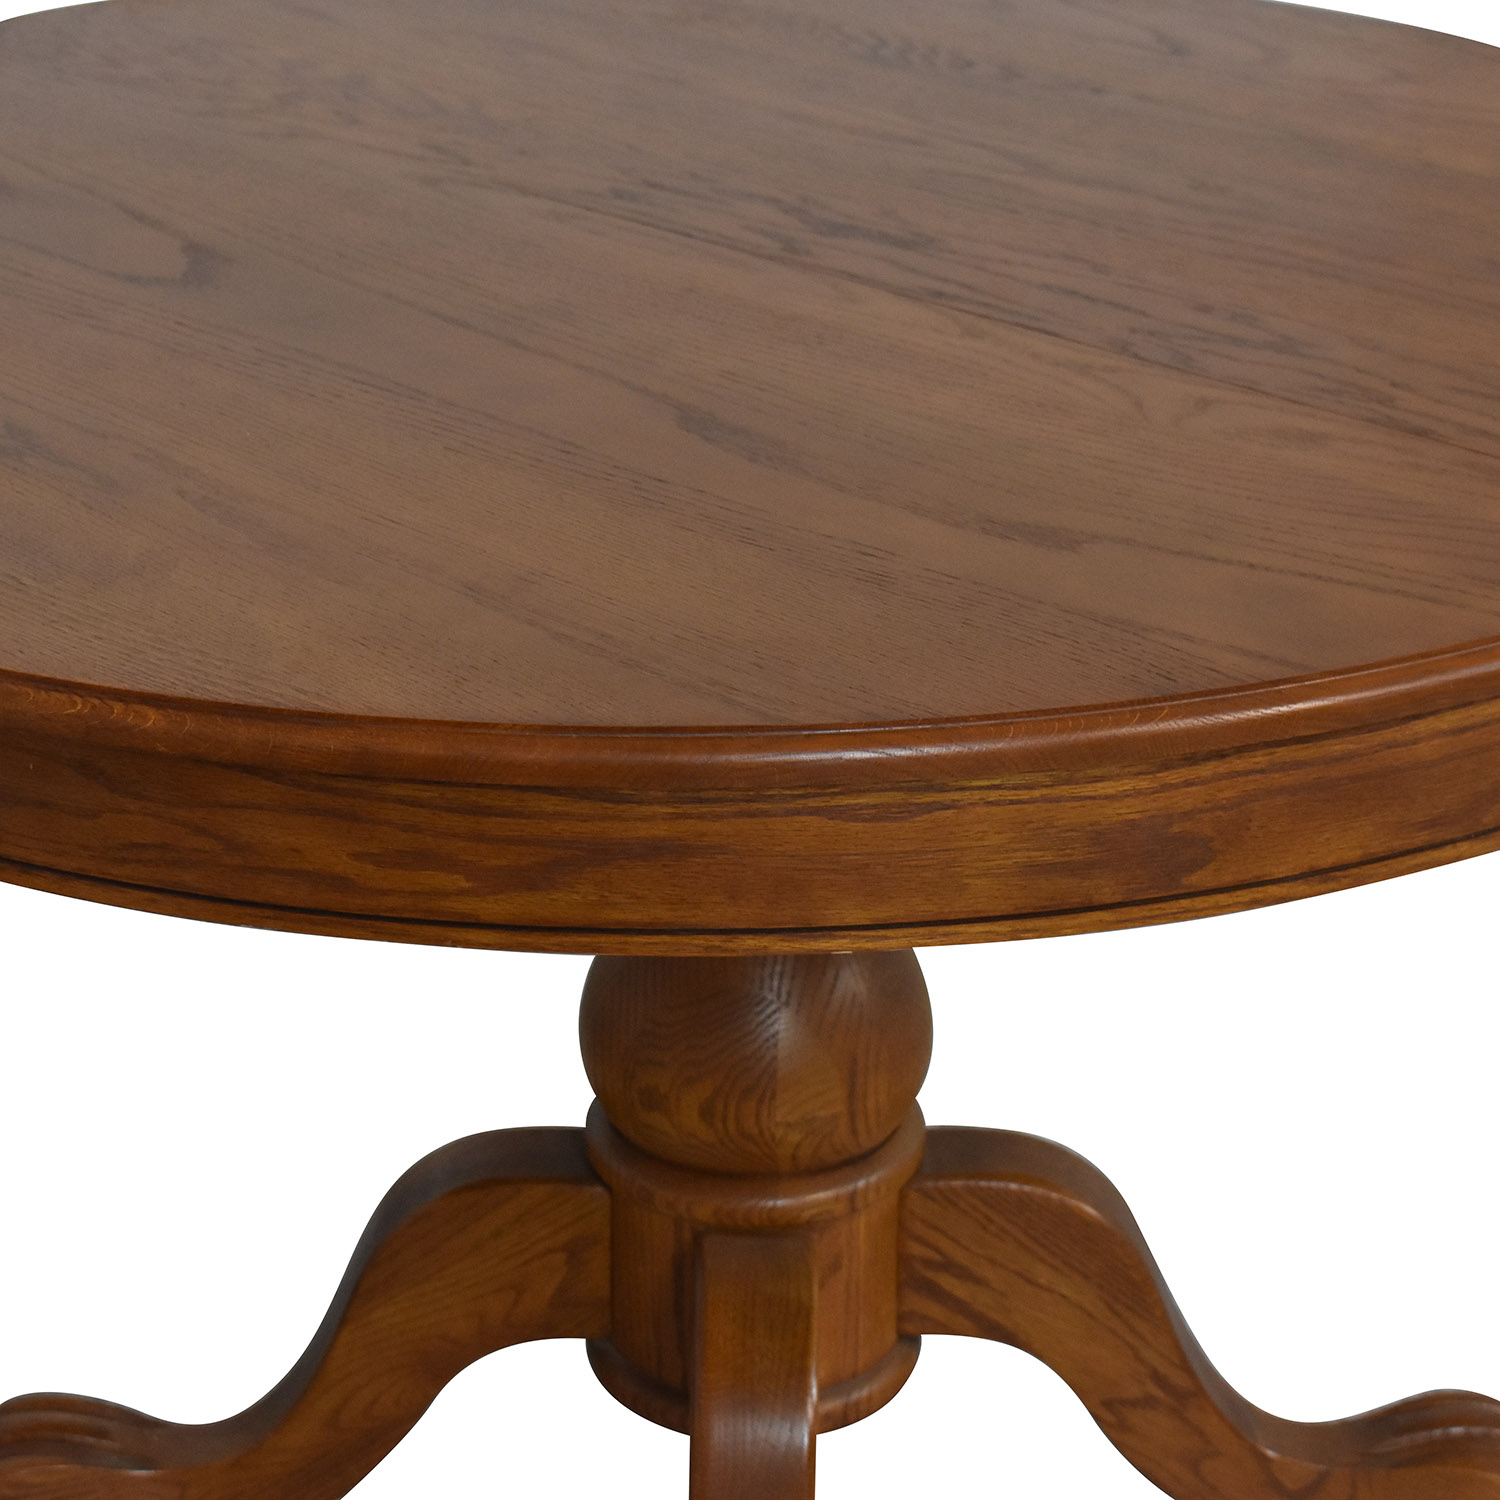 Keller Keller Extendable Dining Table second hand